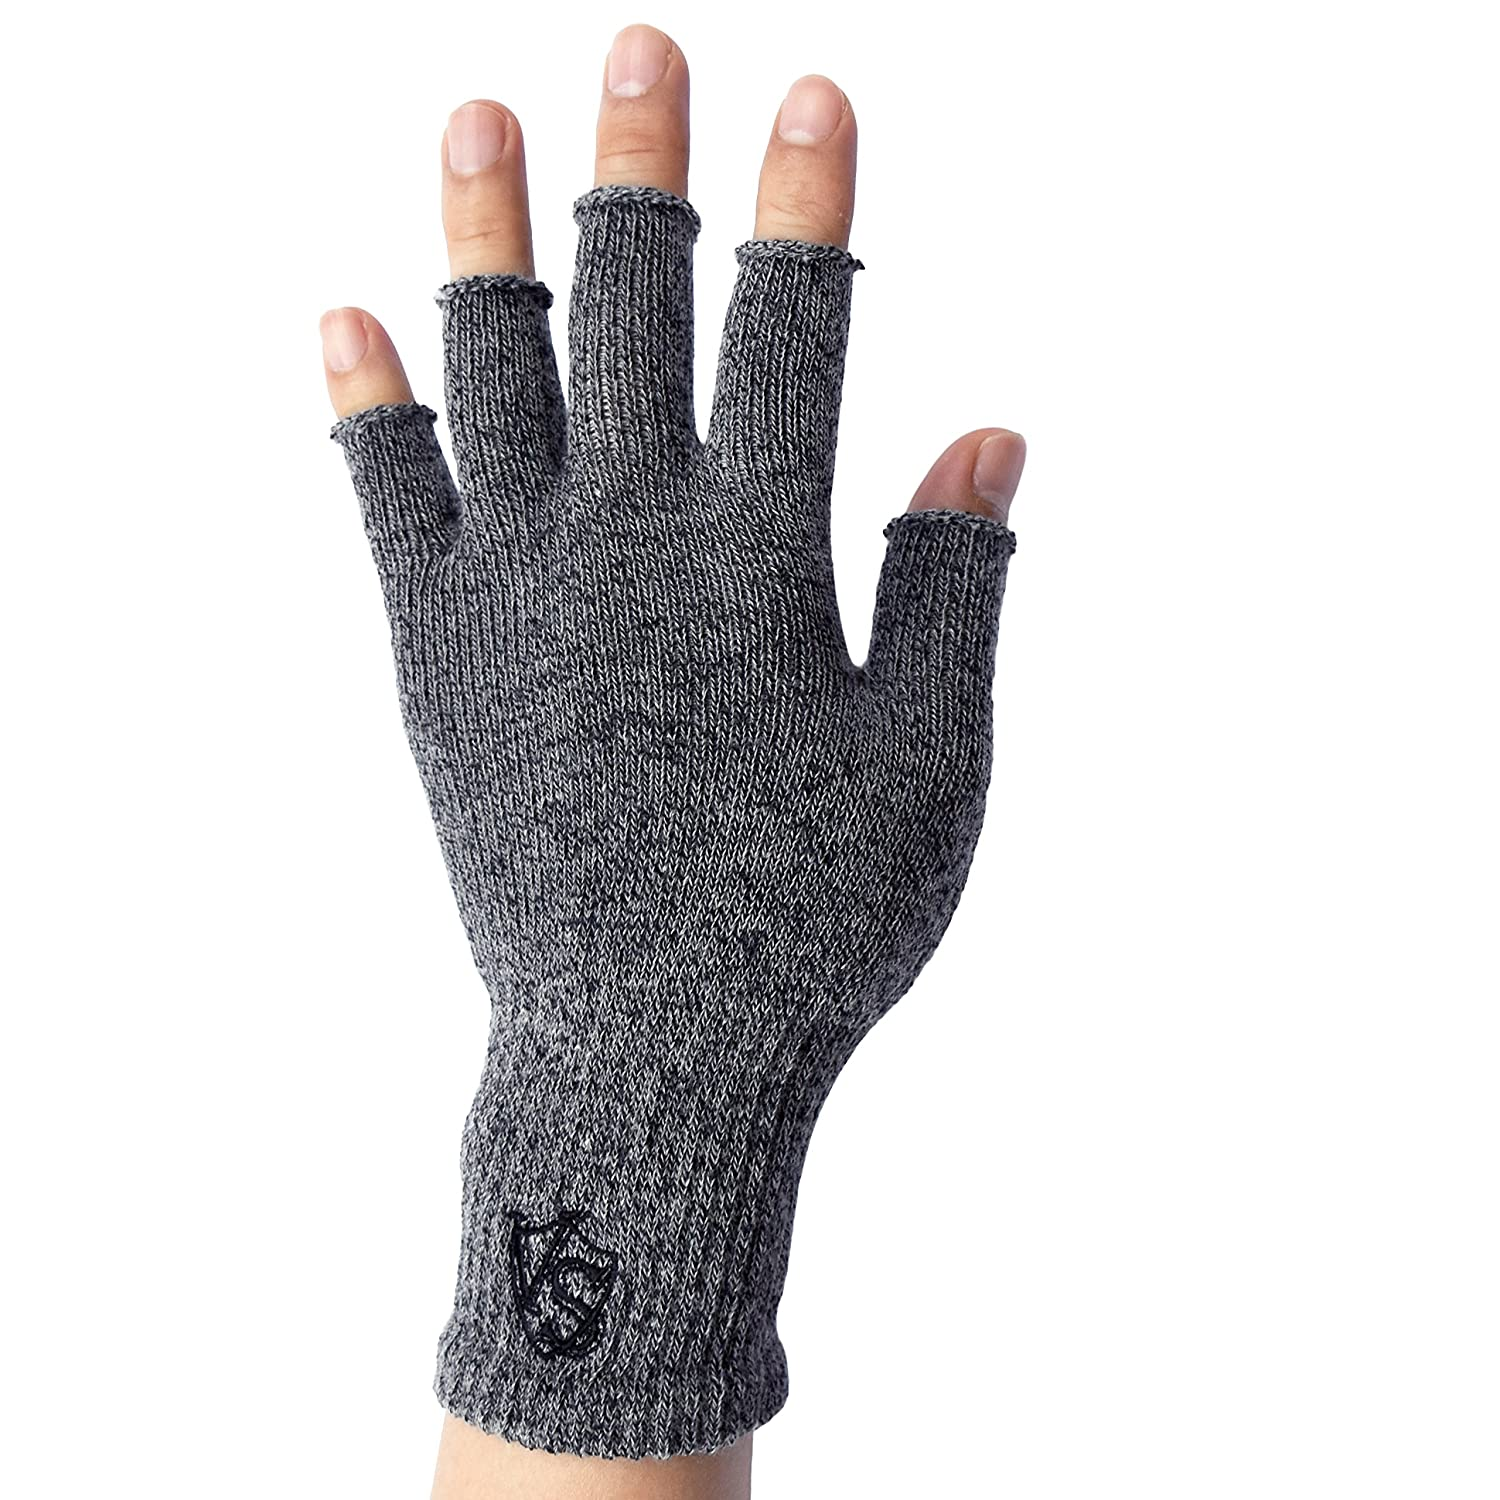 Vital Salveo - Germanium and Bamboo Charcoal Unisex Half Finger Gloves Circulation Texting Fingerless Recovery Gloves, Arthritis gloves(Pair)/Dark Grey/XL Vital Silver